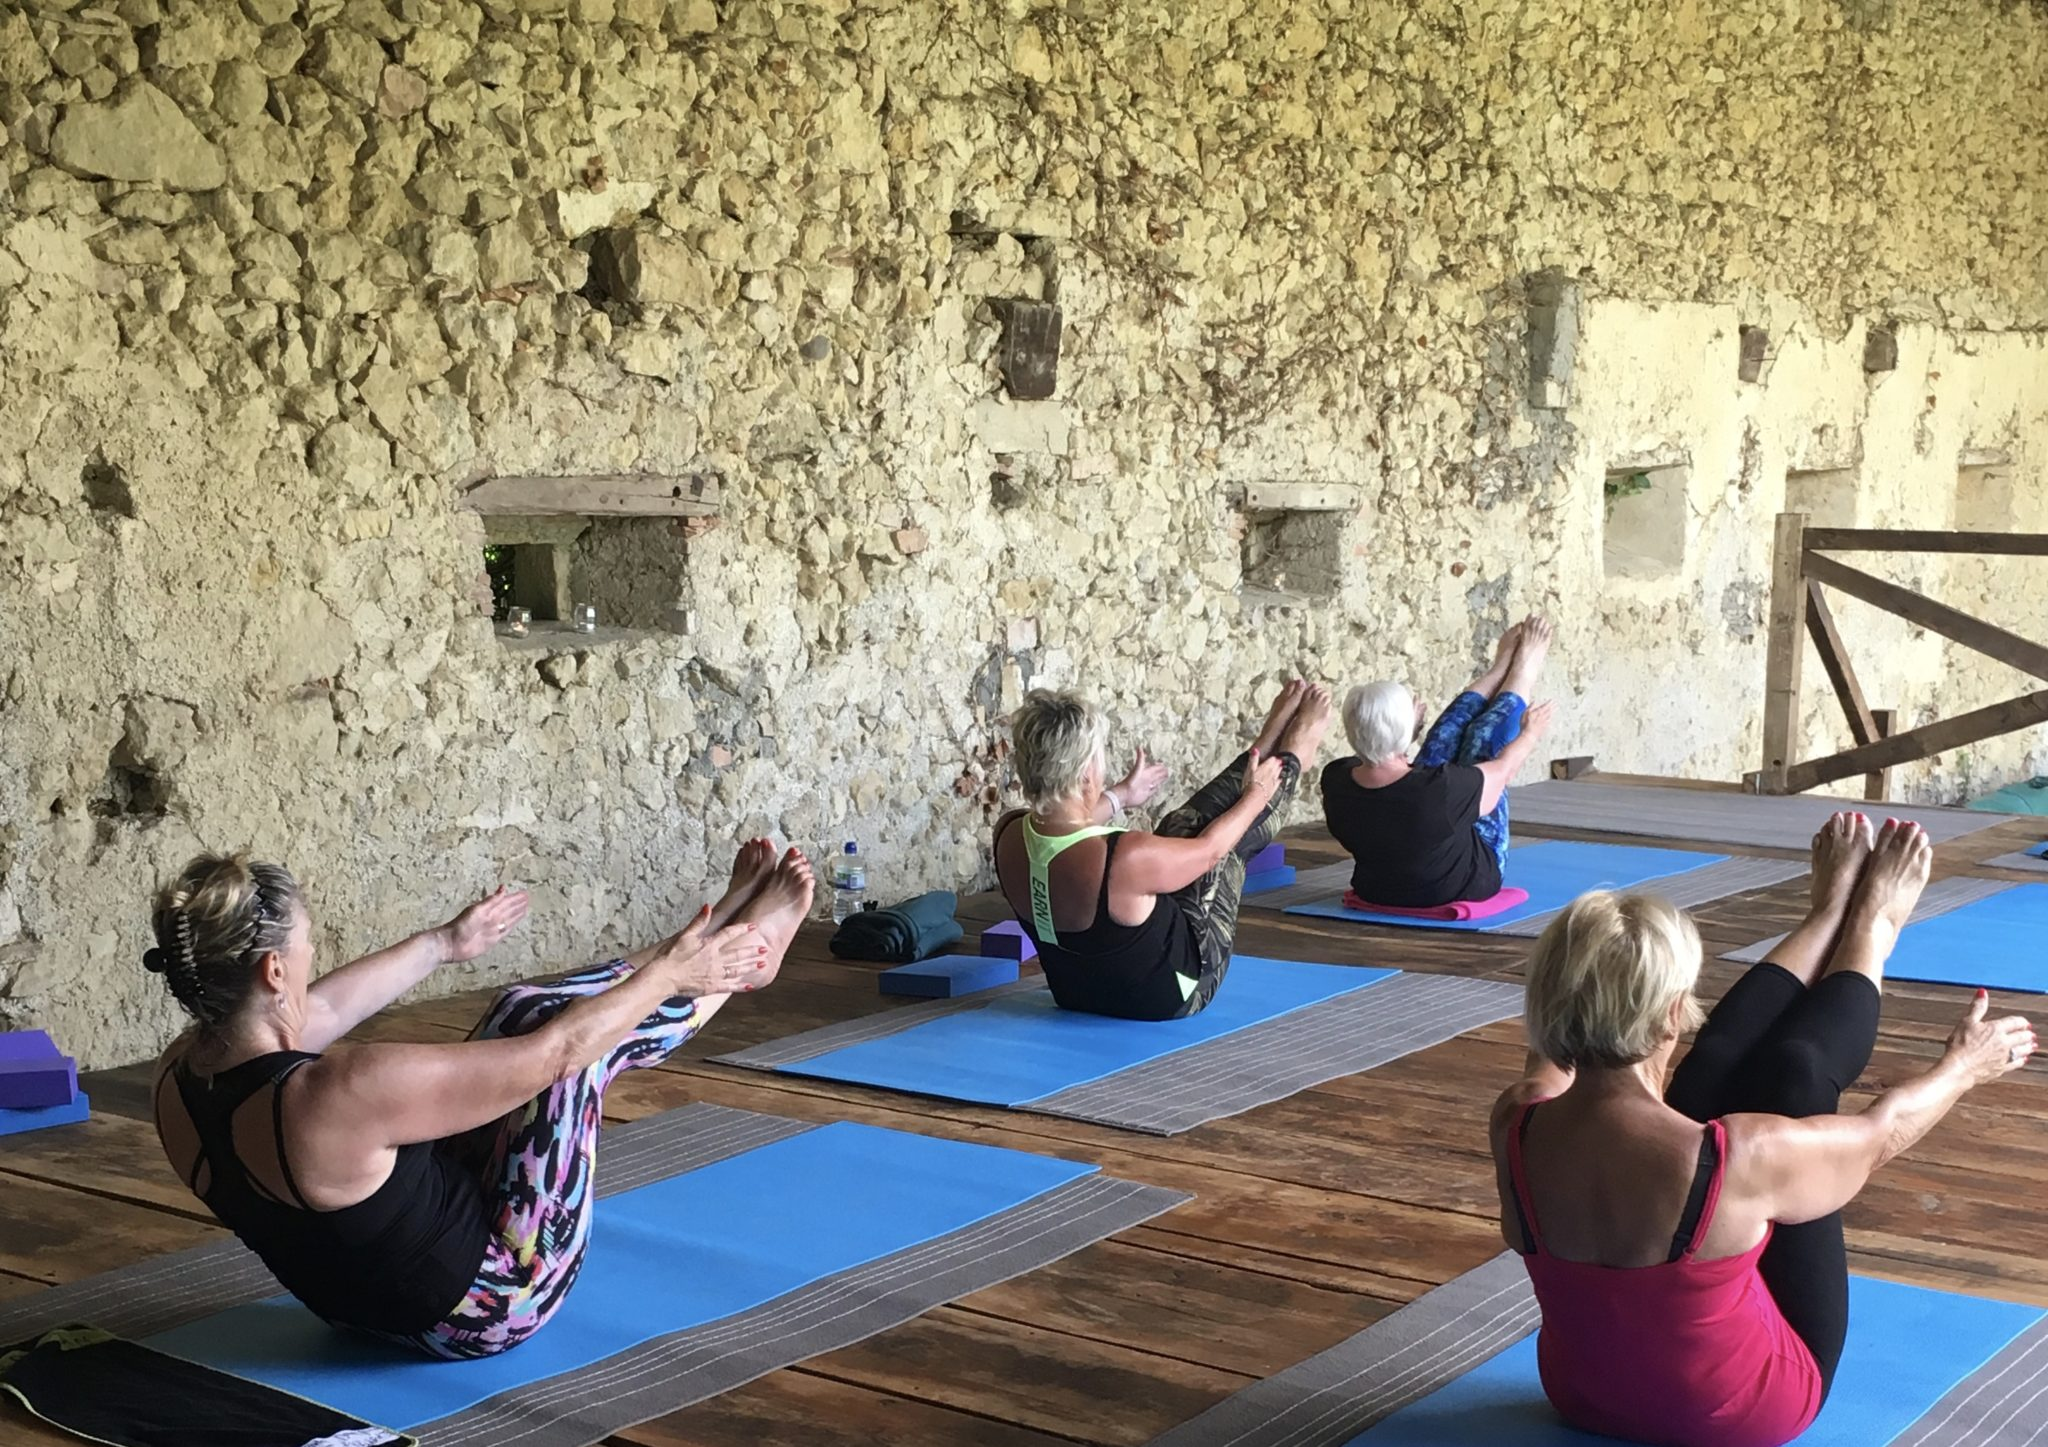 Pignoulet - yoga retreats and pilates retreats in the stunning French countryside.